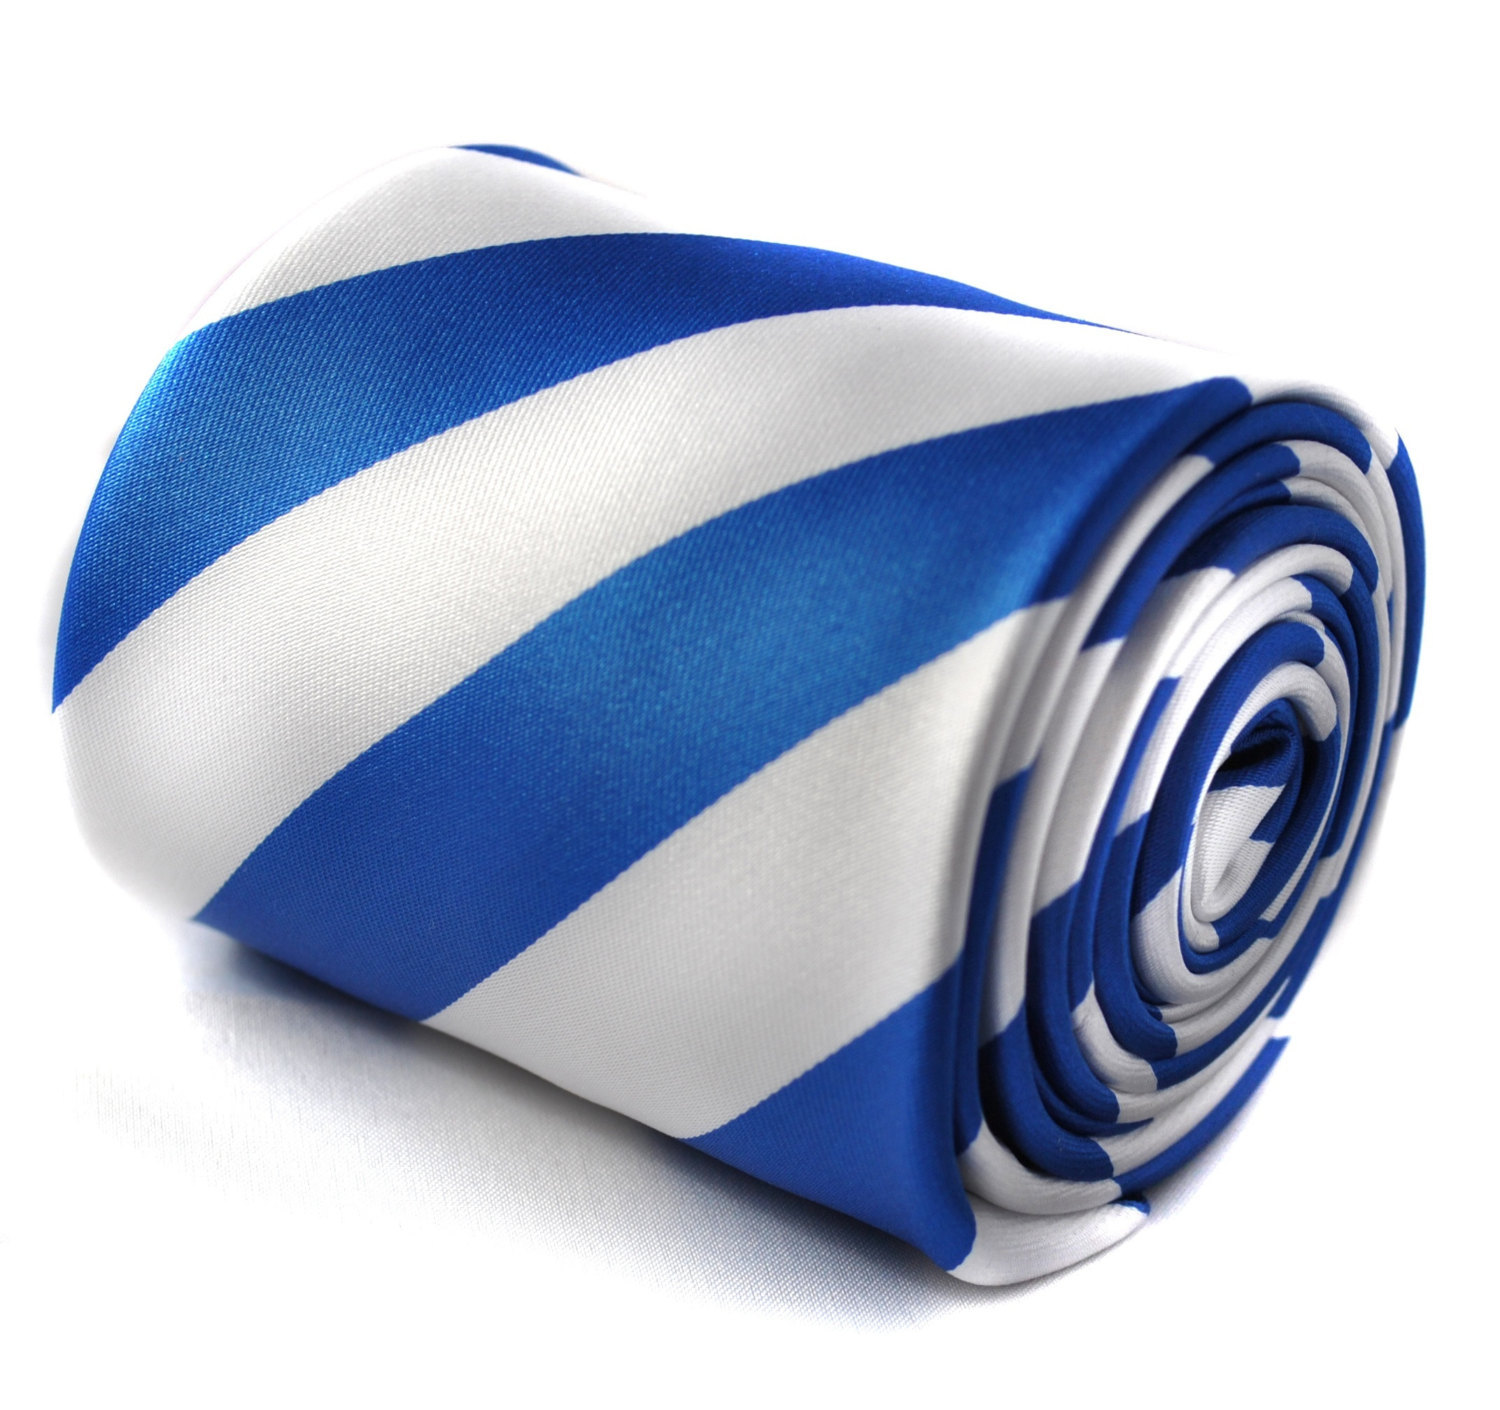 royal blue and white barber stripe tie with signature floral design to the rear